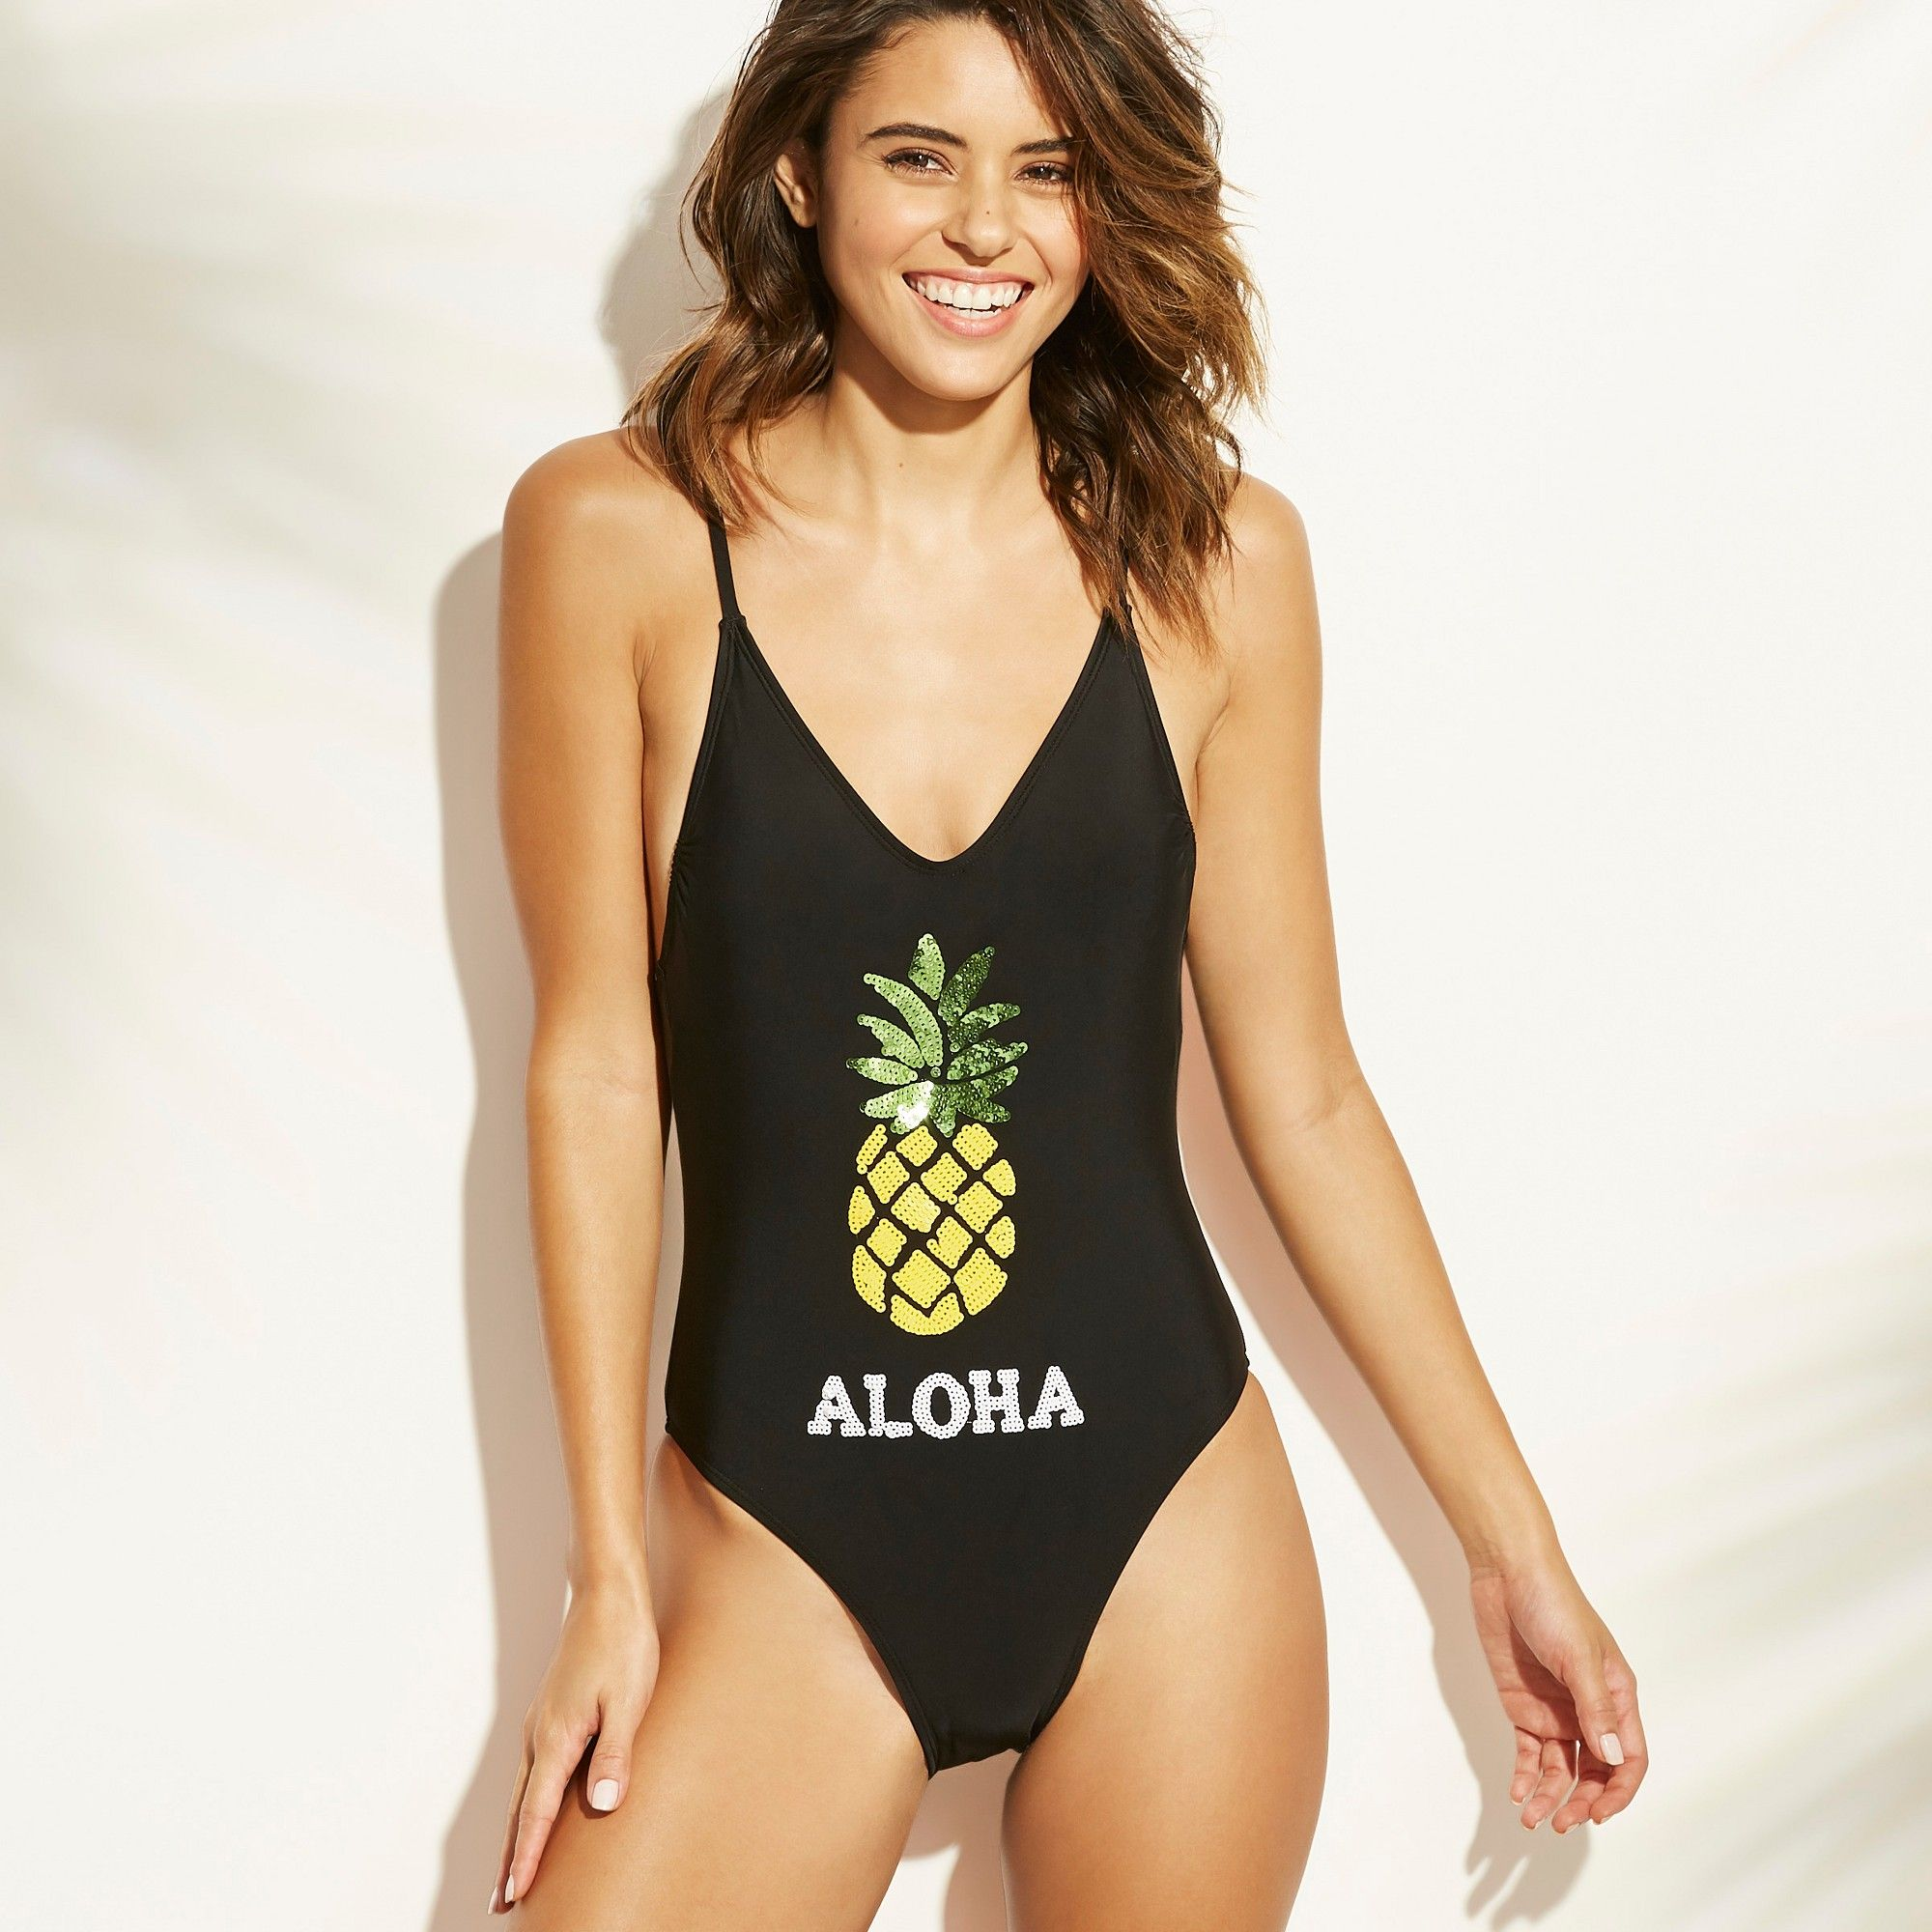 5d426389d71 Women's Sequin Pineapple Scoop Back One Piece Swimsuit - Xhilaration ...